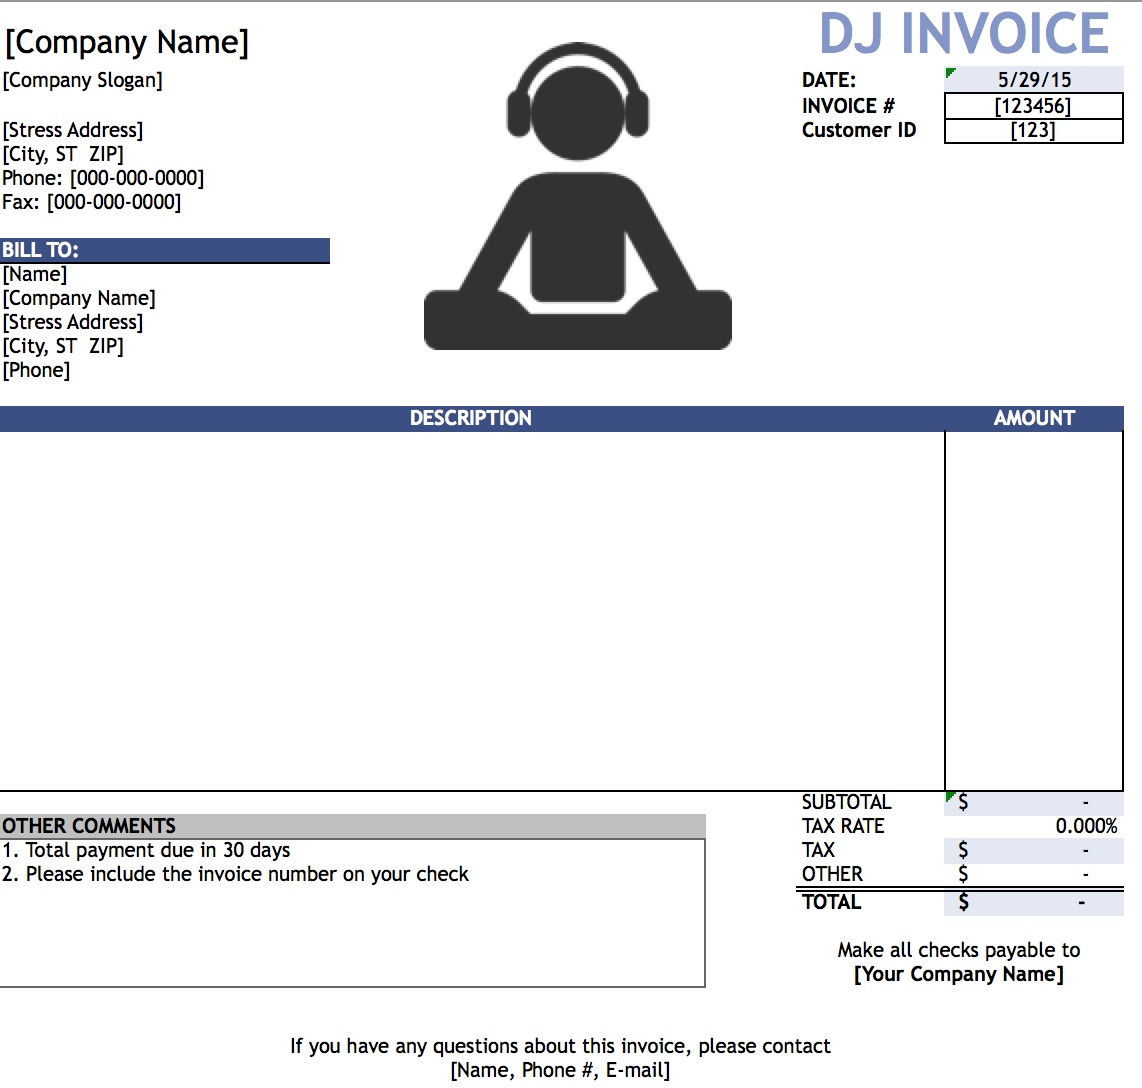 dj disc jockey invoice template excel pdf word doc